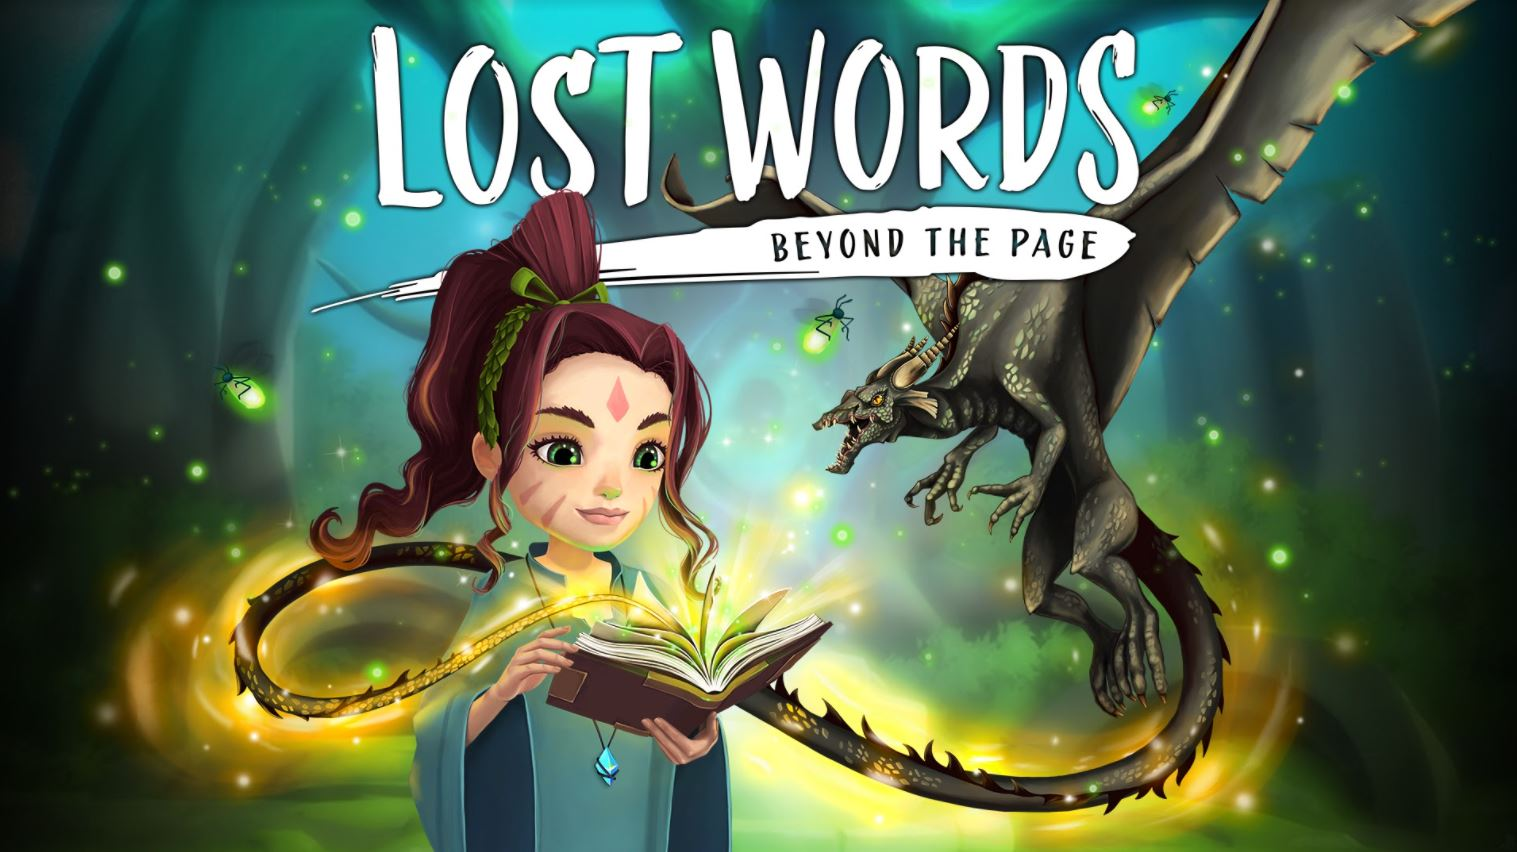 lost-words-beyond-the-page-ps4-news-review-videos